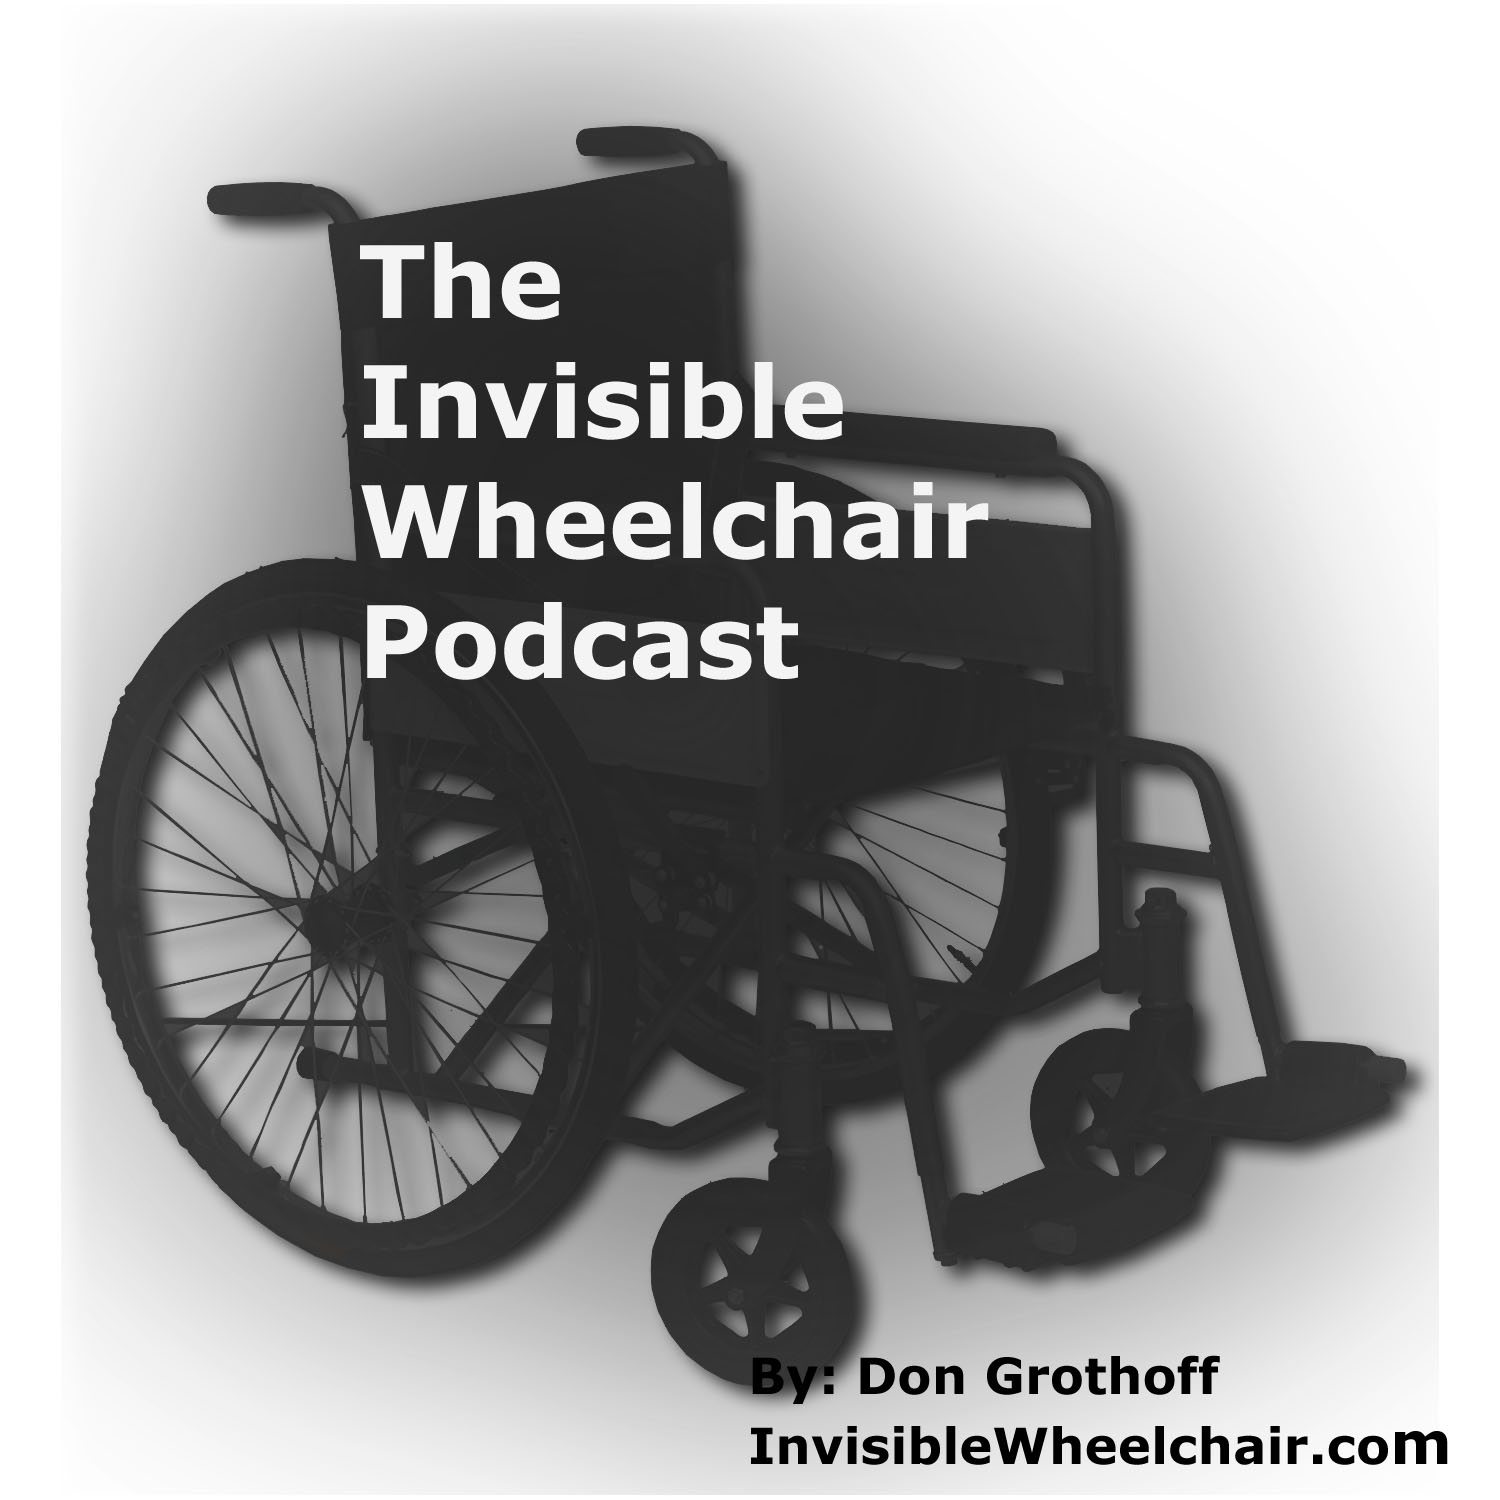 Invisible Wheelchair Podcast show art